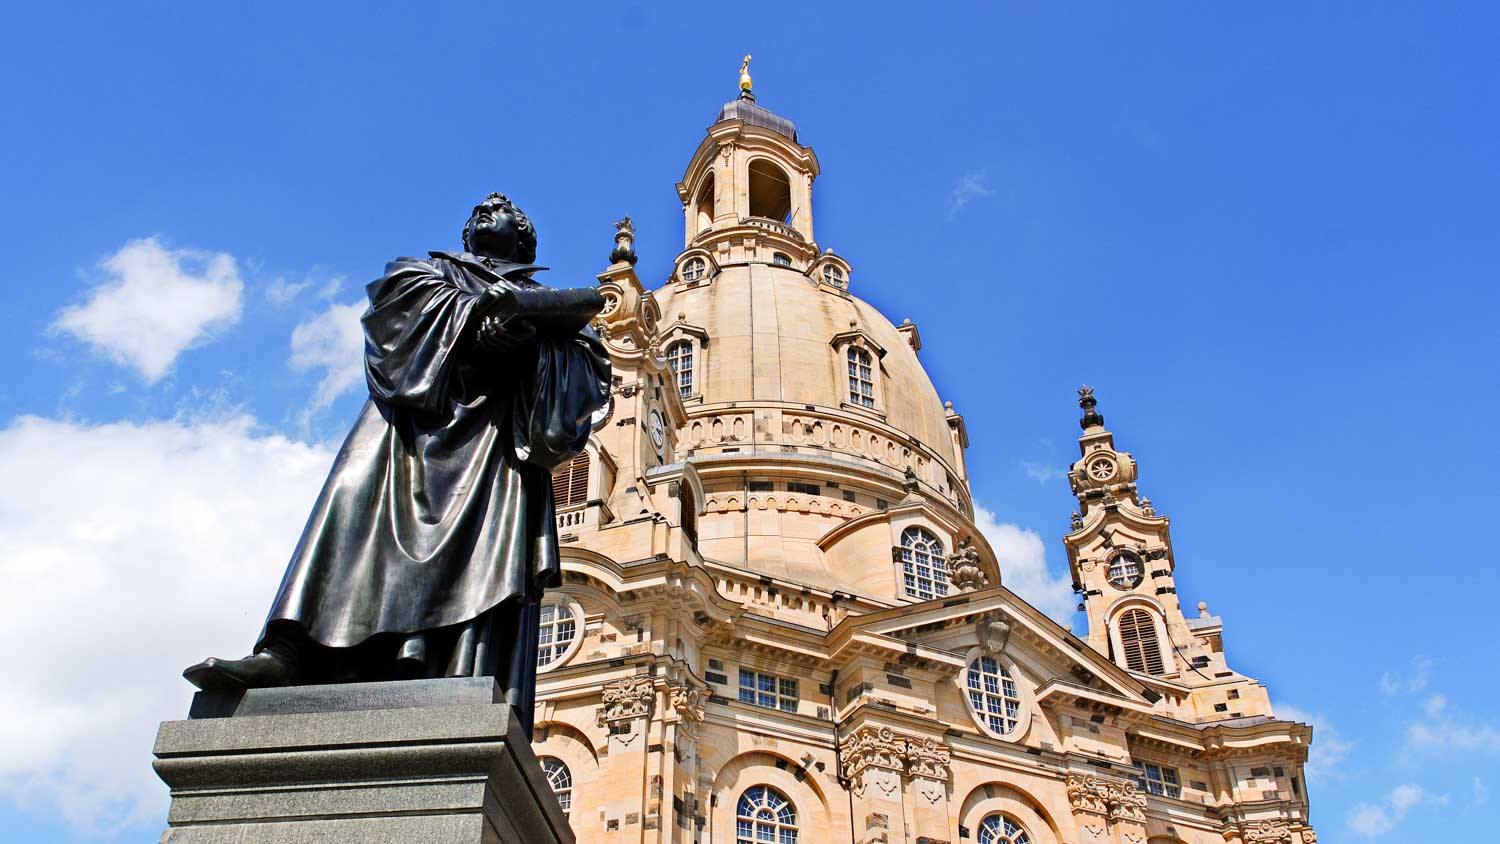 dresden frauenkirche top tours tickets 2018 with photos dresden germany getyourguide. Black Bedroom Furniture Sets. Home Design Ideas